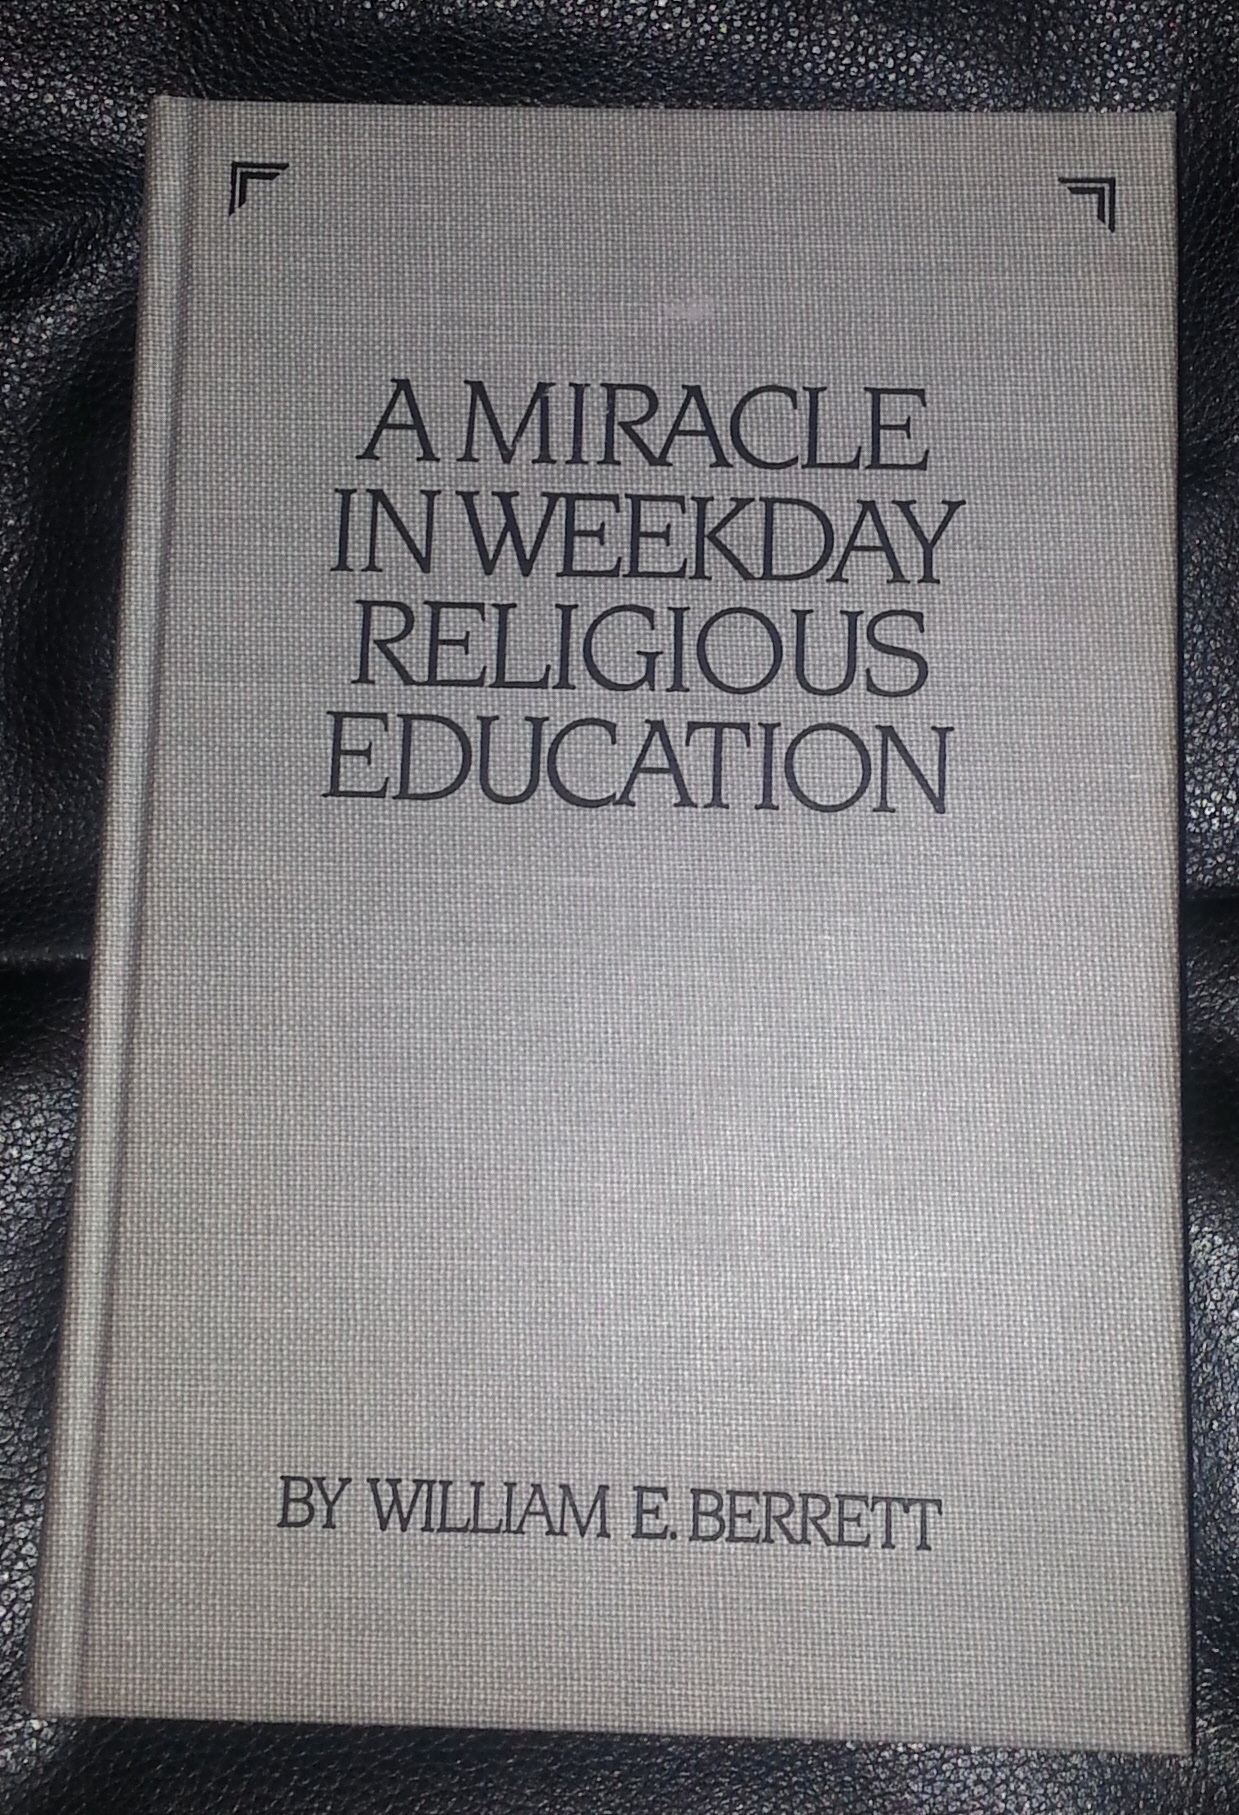 Image for A MIRACLE IN WEEKDAY RELIGIOUS EDUCATION:  A History of the Church Educational System, Being an Account of Weekday Religious Education of the Church of ... of the Seminaries and Institutes of Religion